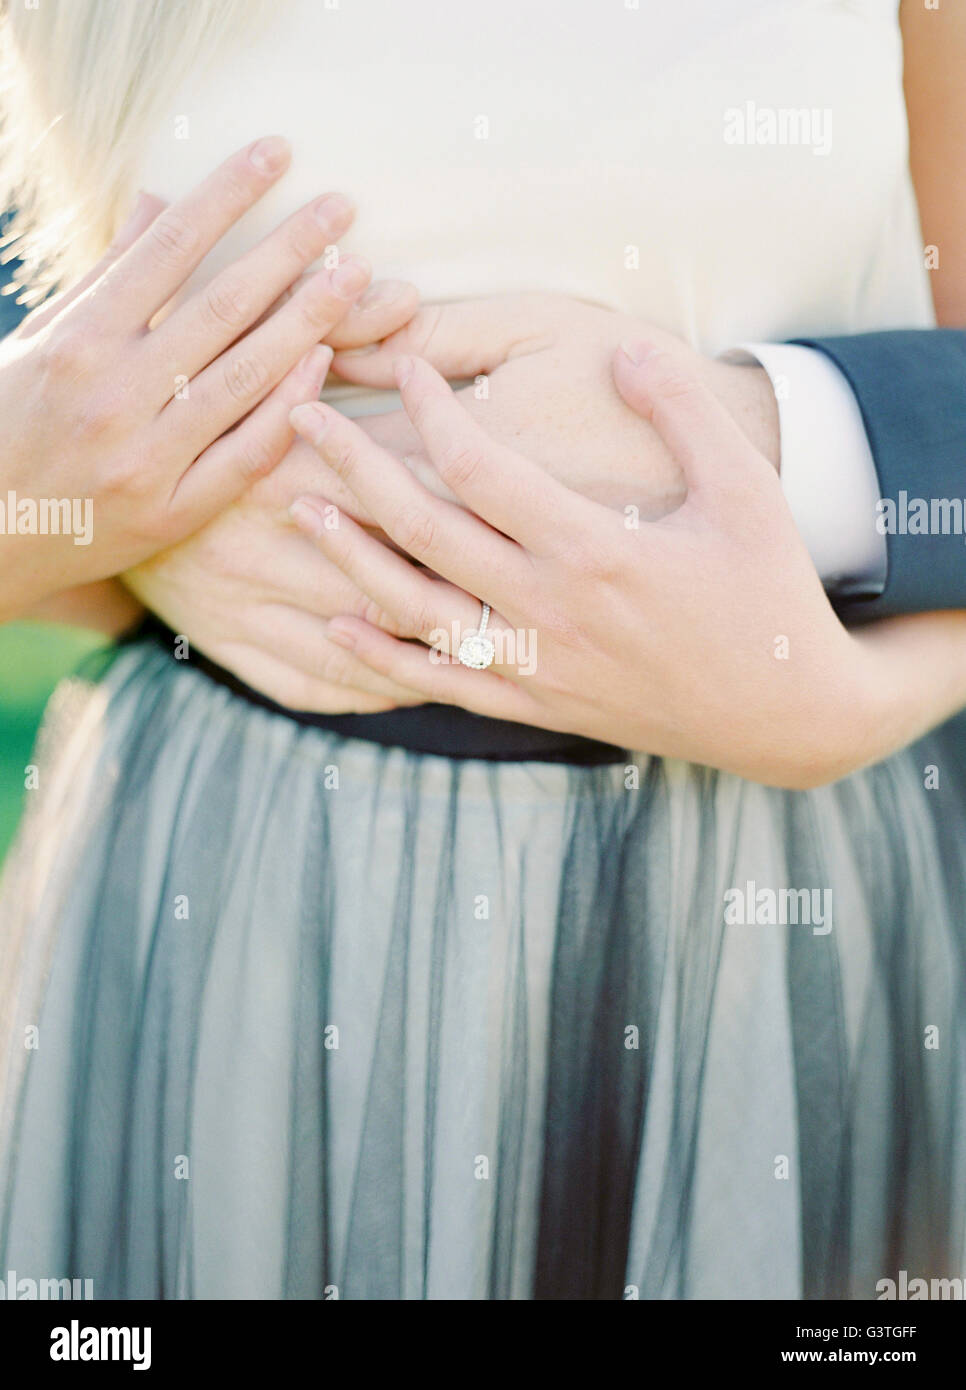 Sweden, Close- up of hands of newlyweds - Stock Image